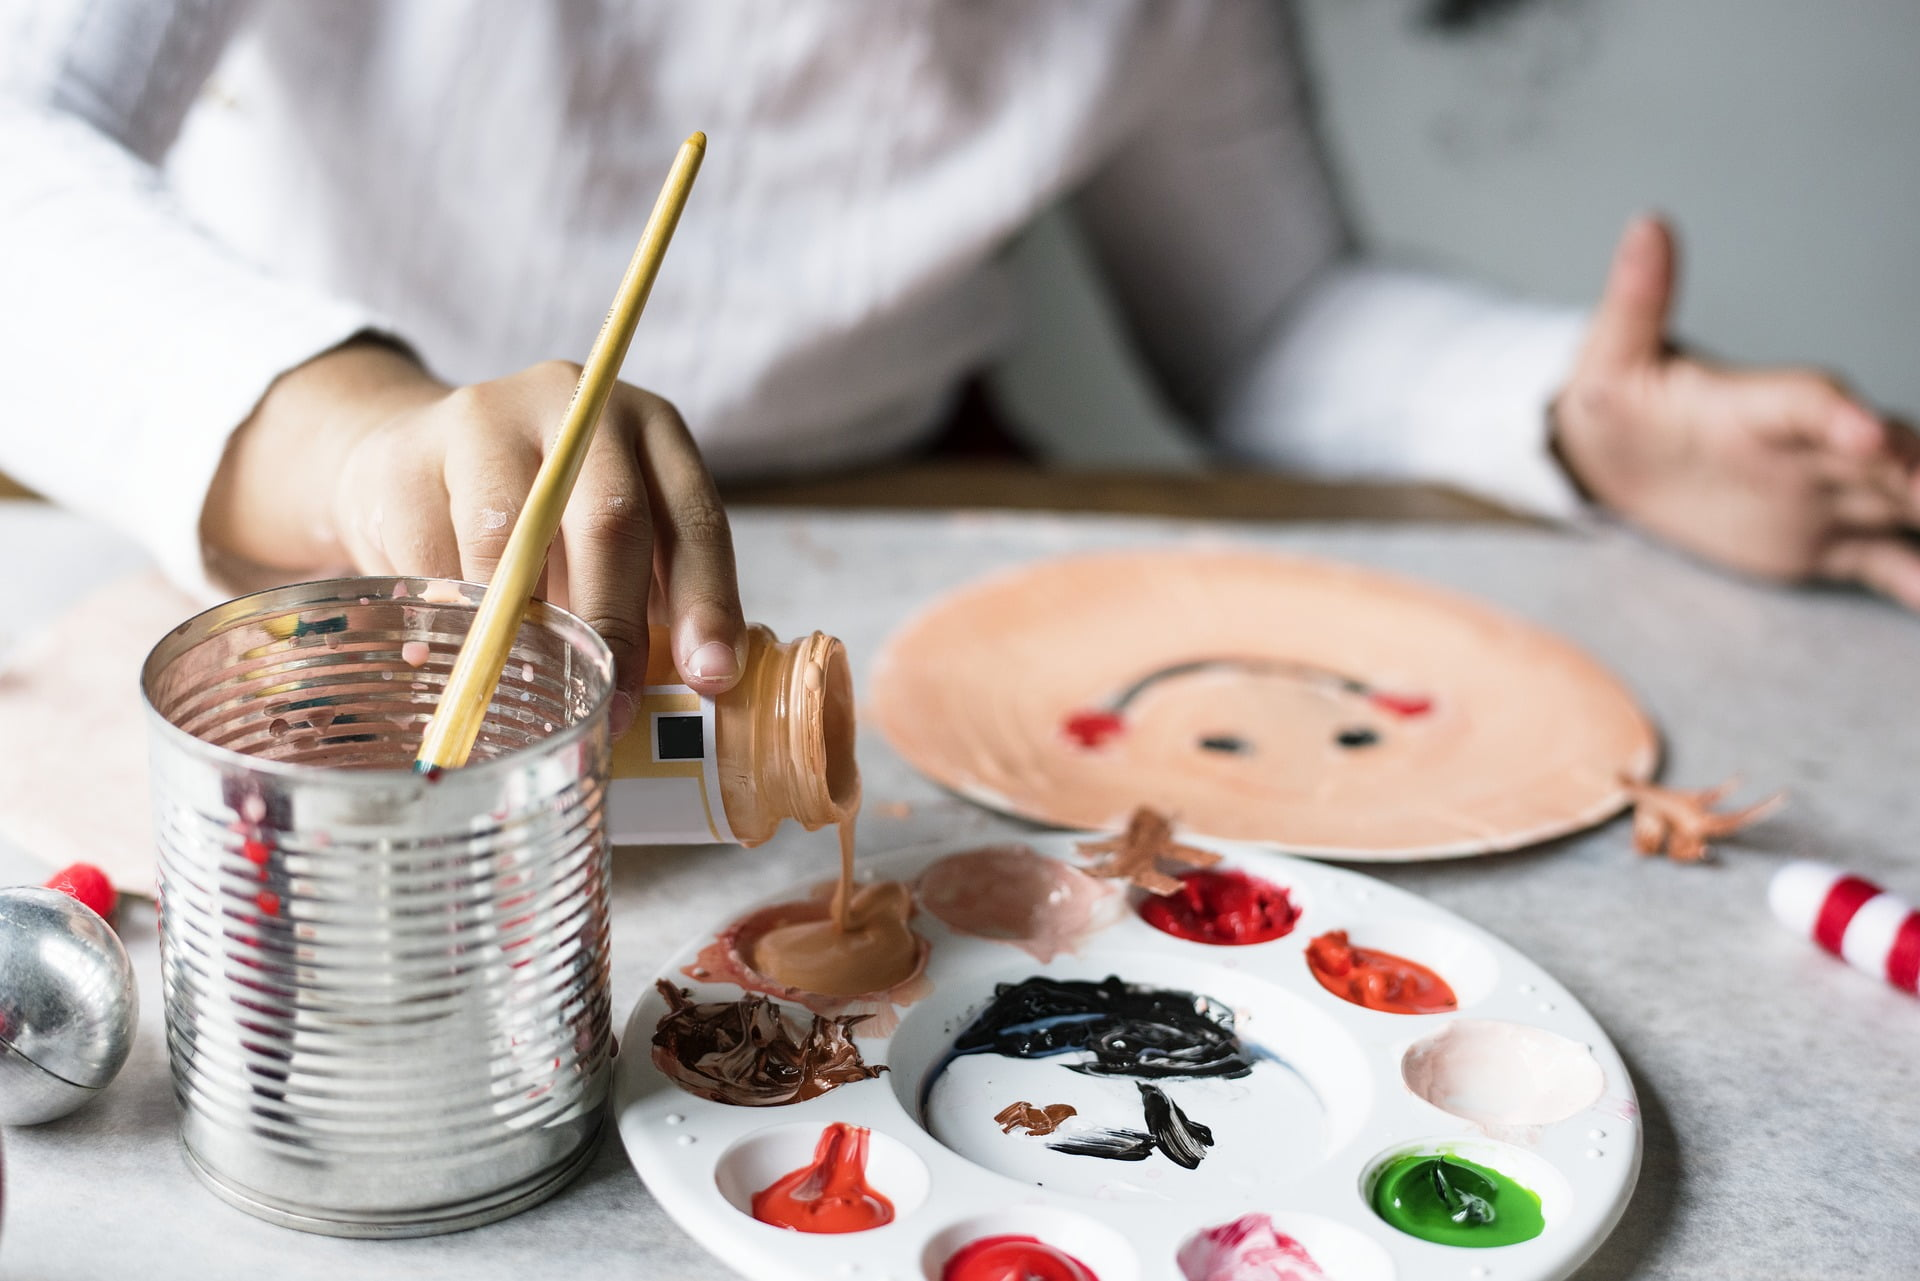 Importance Of Art And Craft In Children's Development